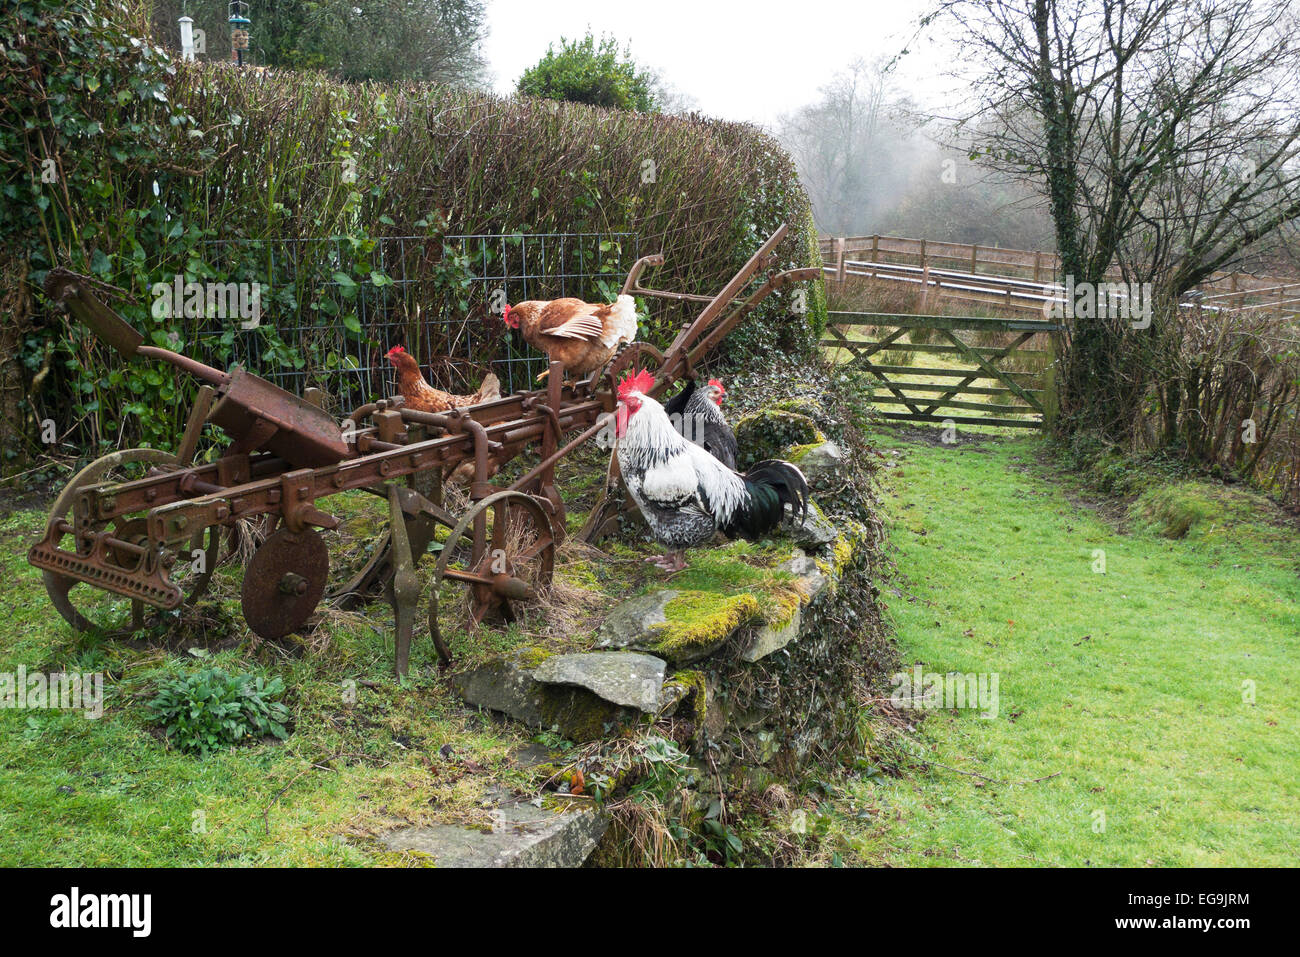 Free range chickens hens with cockerel rooster perch on an old rusty in a smallholding rural garden by a gate in - Stock Image